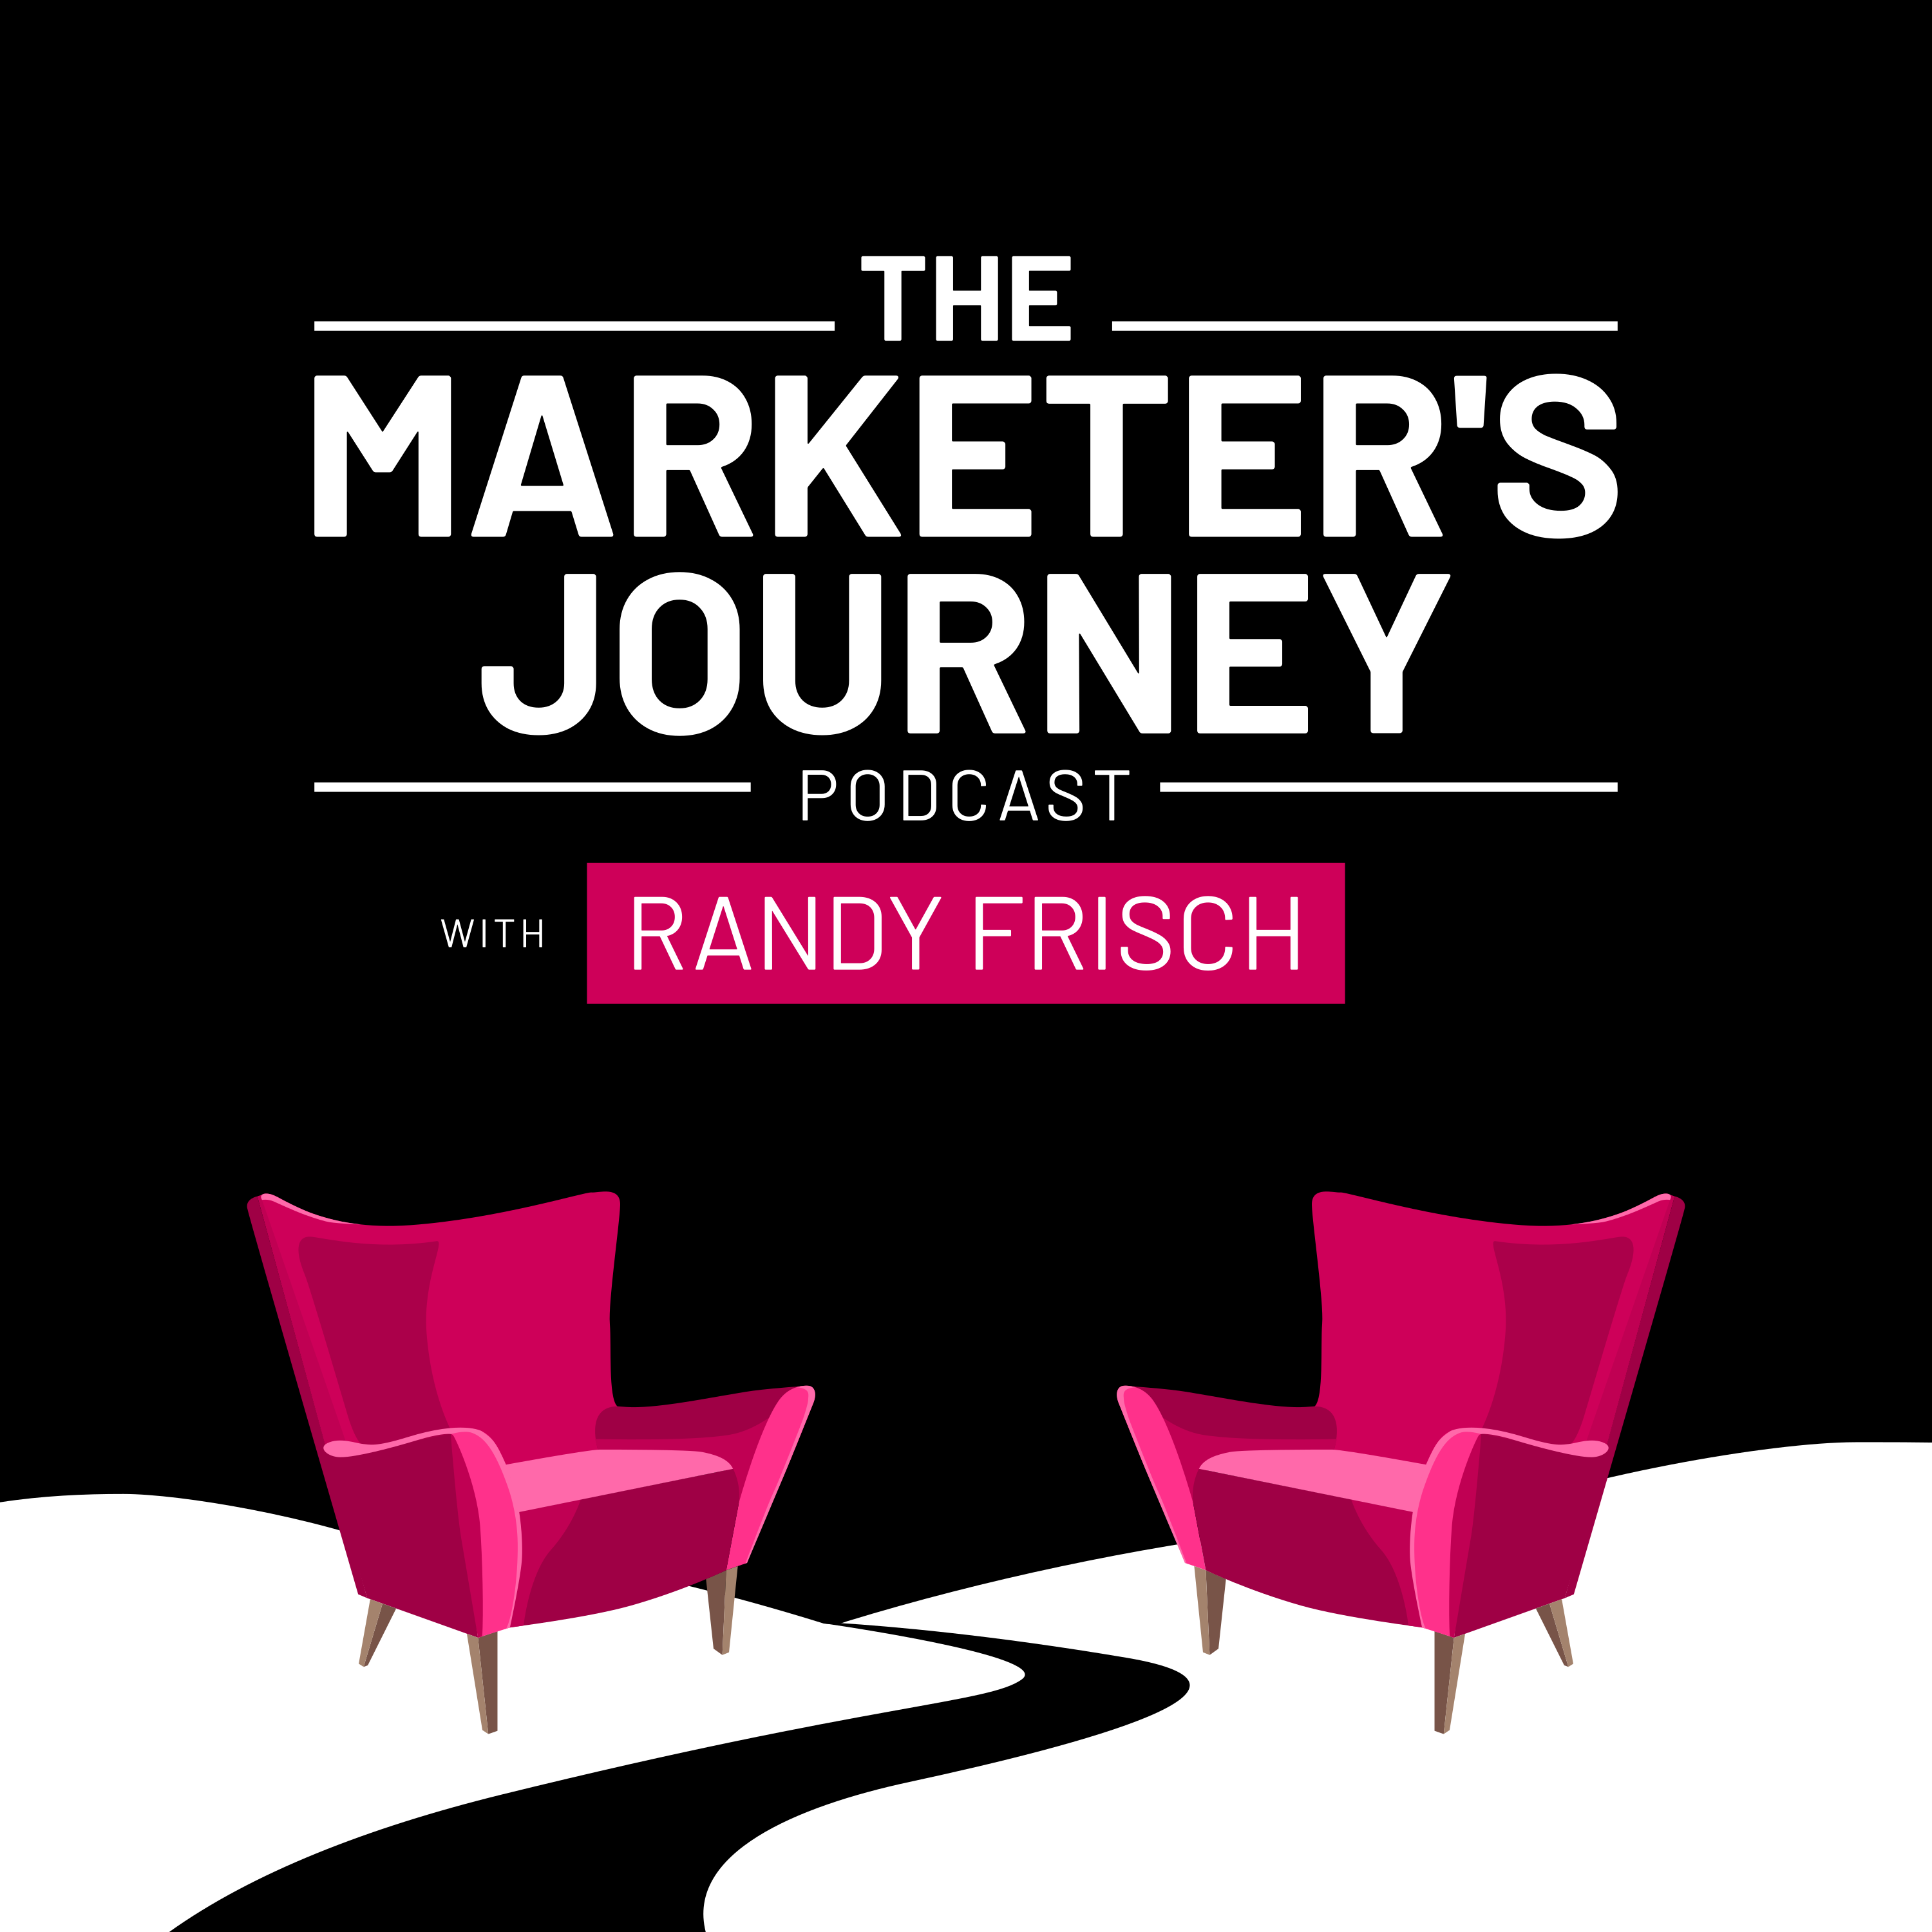 The Marketer's Journey Podcast